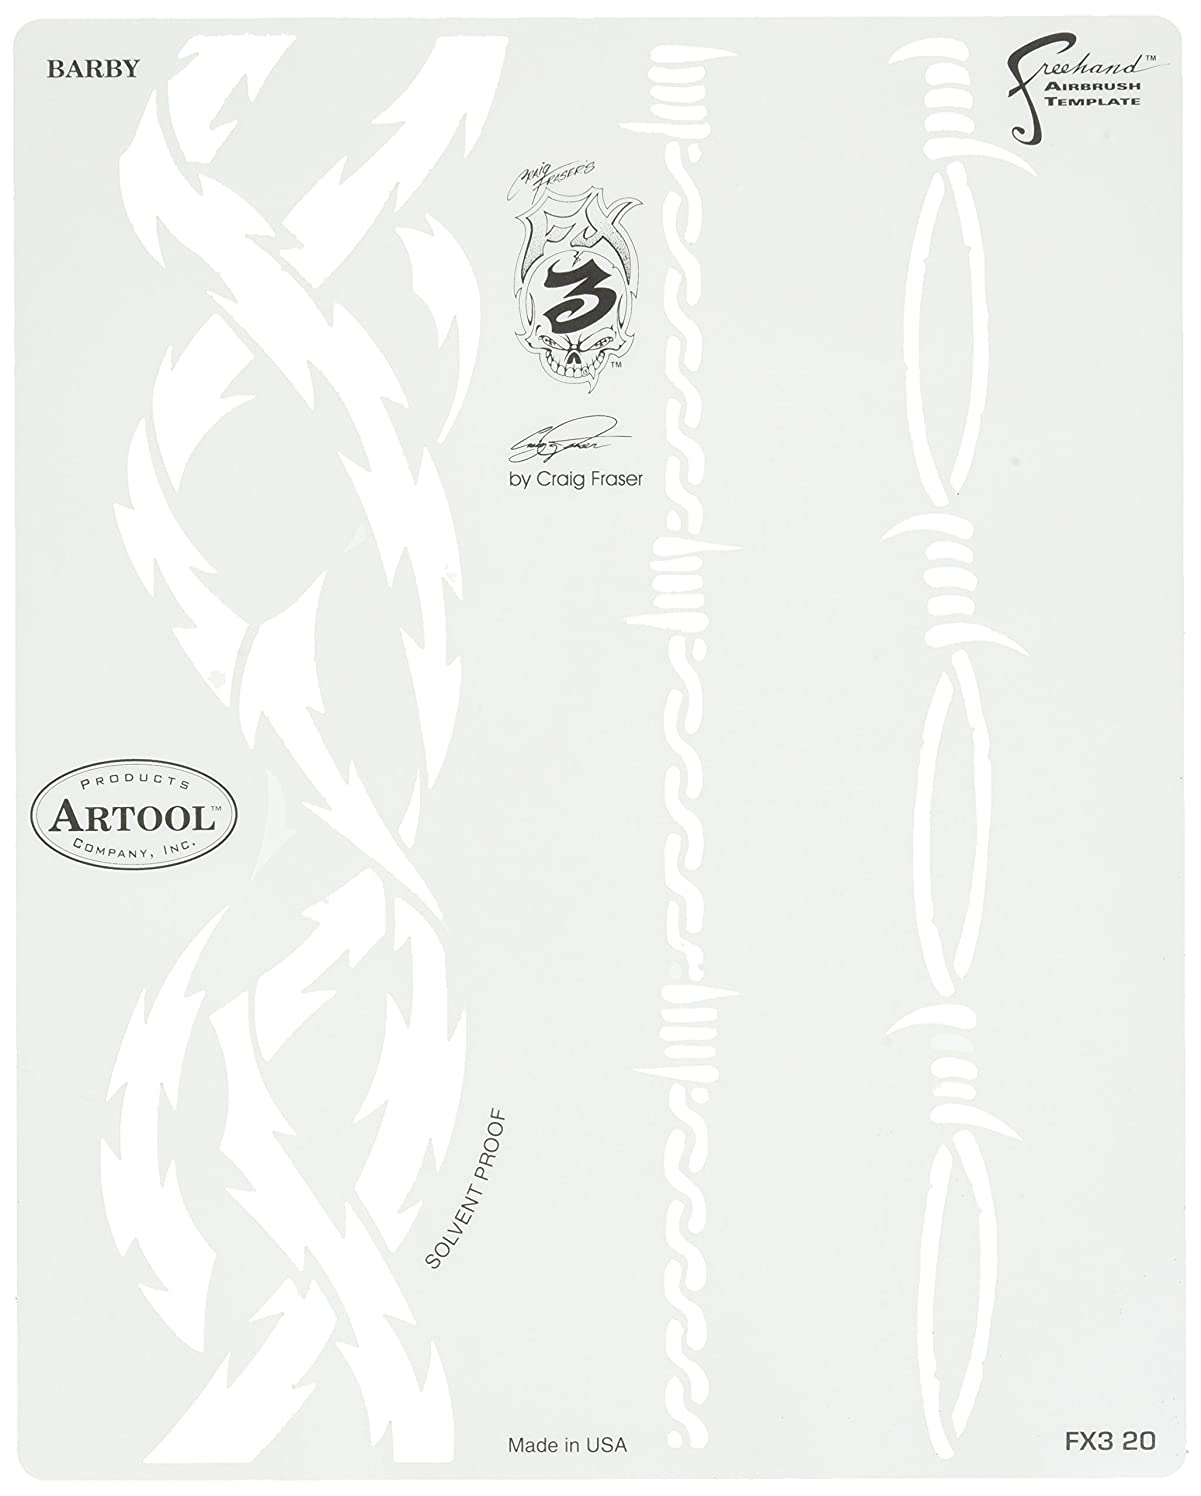 Artool Freehand Airbrush Templates,  Stencil Barby